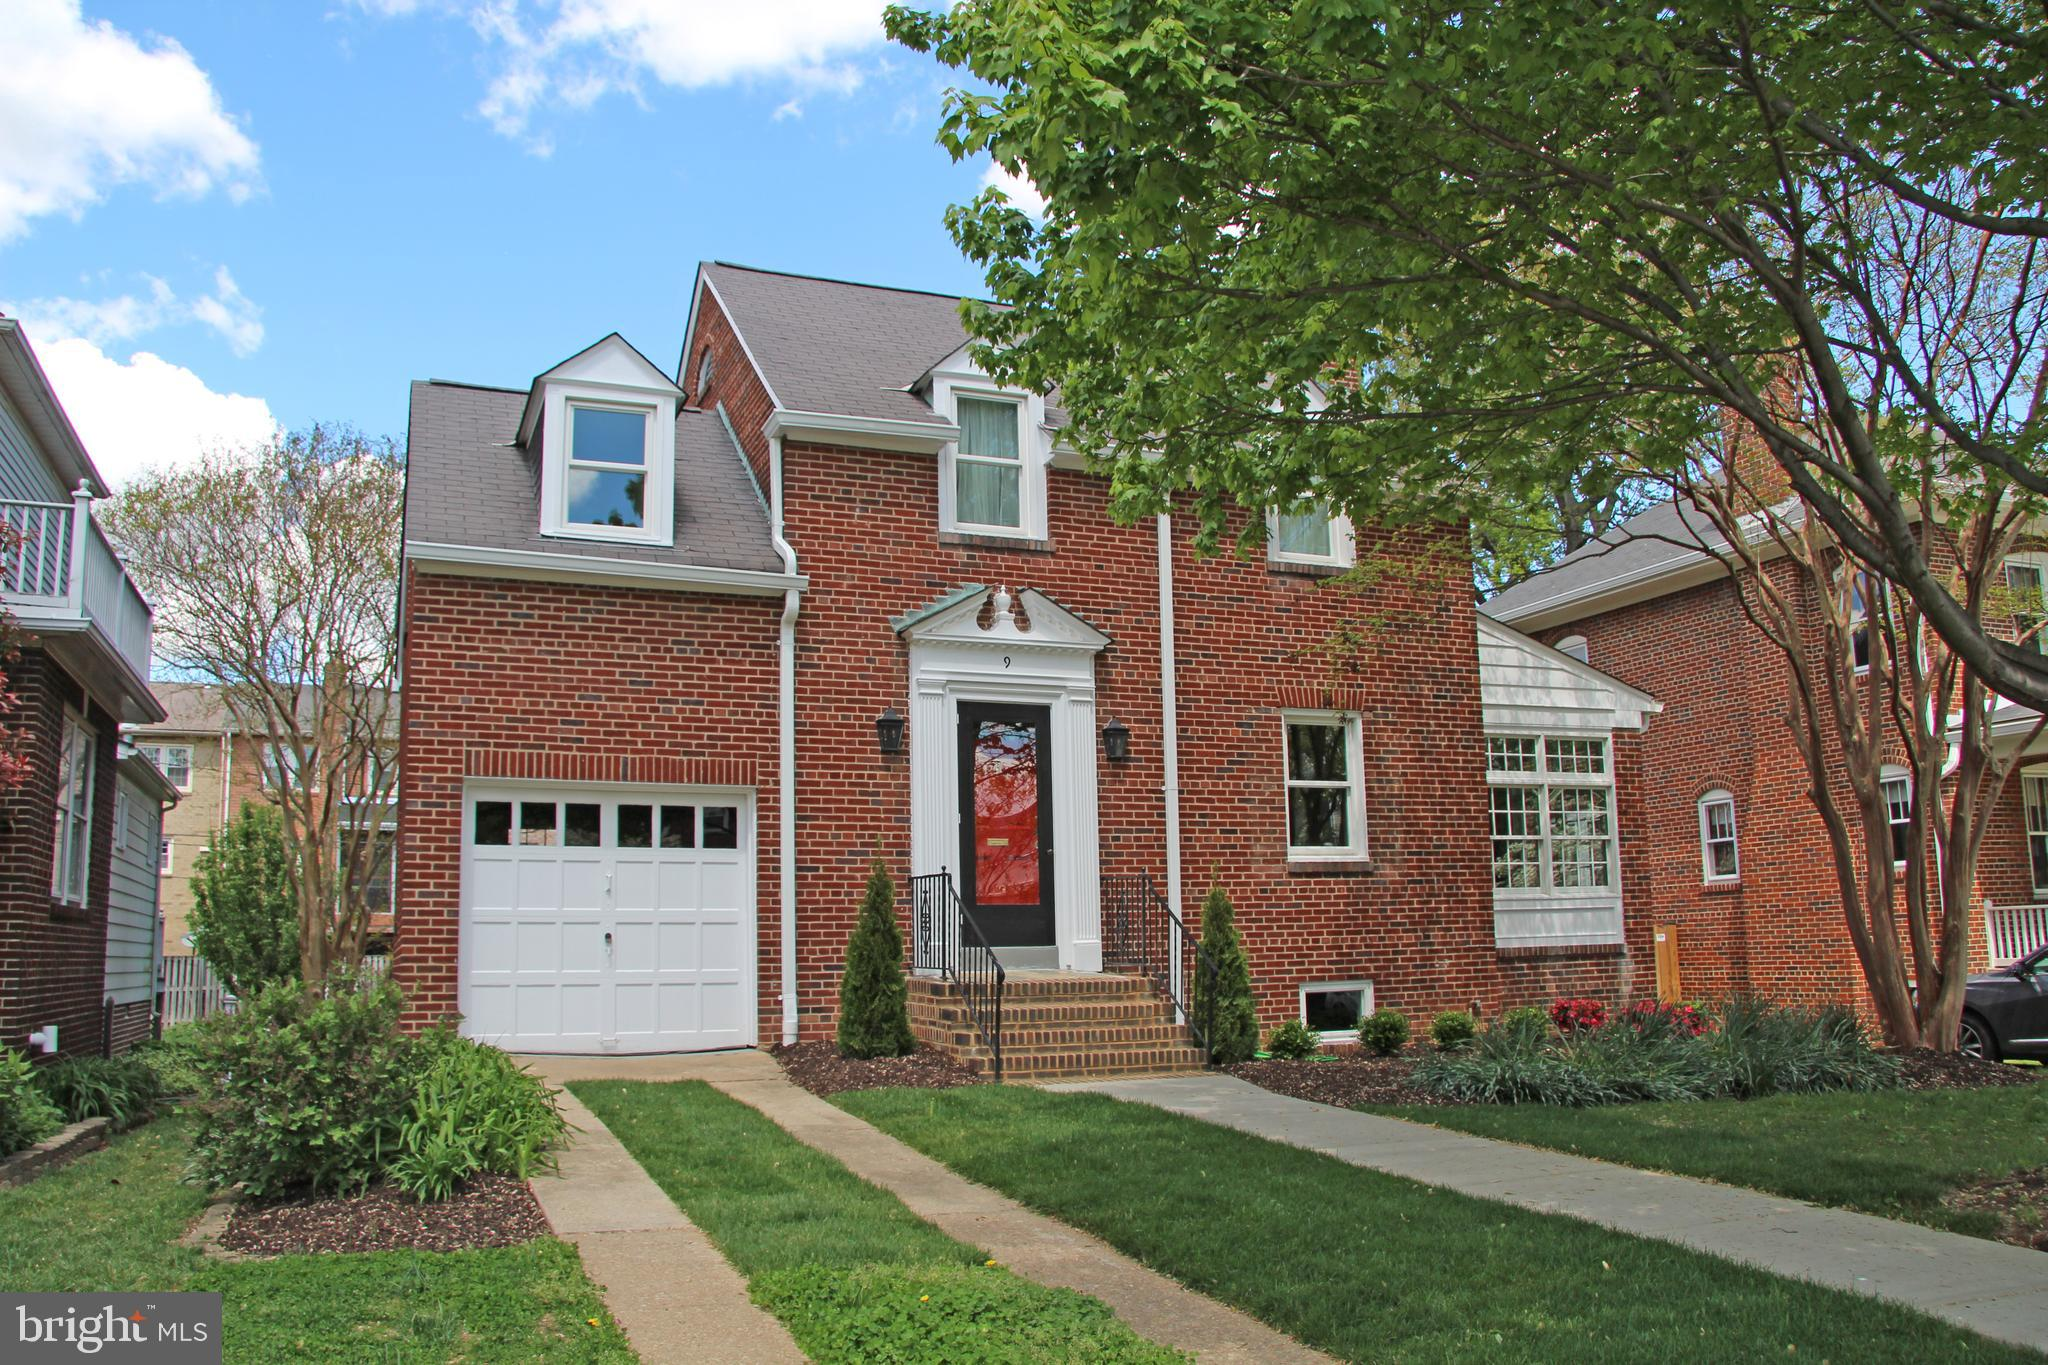 Fabulous location on one of the most desirable streets in Rosemont!  1/2 block to Maury ES, 1 block to Grape & Bean, and an easy 10 minute walk to OT and King Street Metro.  This charming & classic Rosemont brick colonial, on a fully landscaped 6,600 sf lot, boasts 3 BRs, 2 BAs, and a GARAGE! There is plenty of room for future expansion.  The gleaming hardwood floors, built-in cabinetry in the dining room, and flagstone floor in the sun room harken back to another era.  Completely updated inside and out with a new gas boiler and water heater, new chimney liner and damper, rebuilt backporch, repointed steps, new sidewalk, new LED recessed lighting in the kitchen, and, well, too many updates to list here.   This home is ready for you to move right in and focus on what you would like to do to make it uniquely yours.